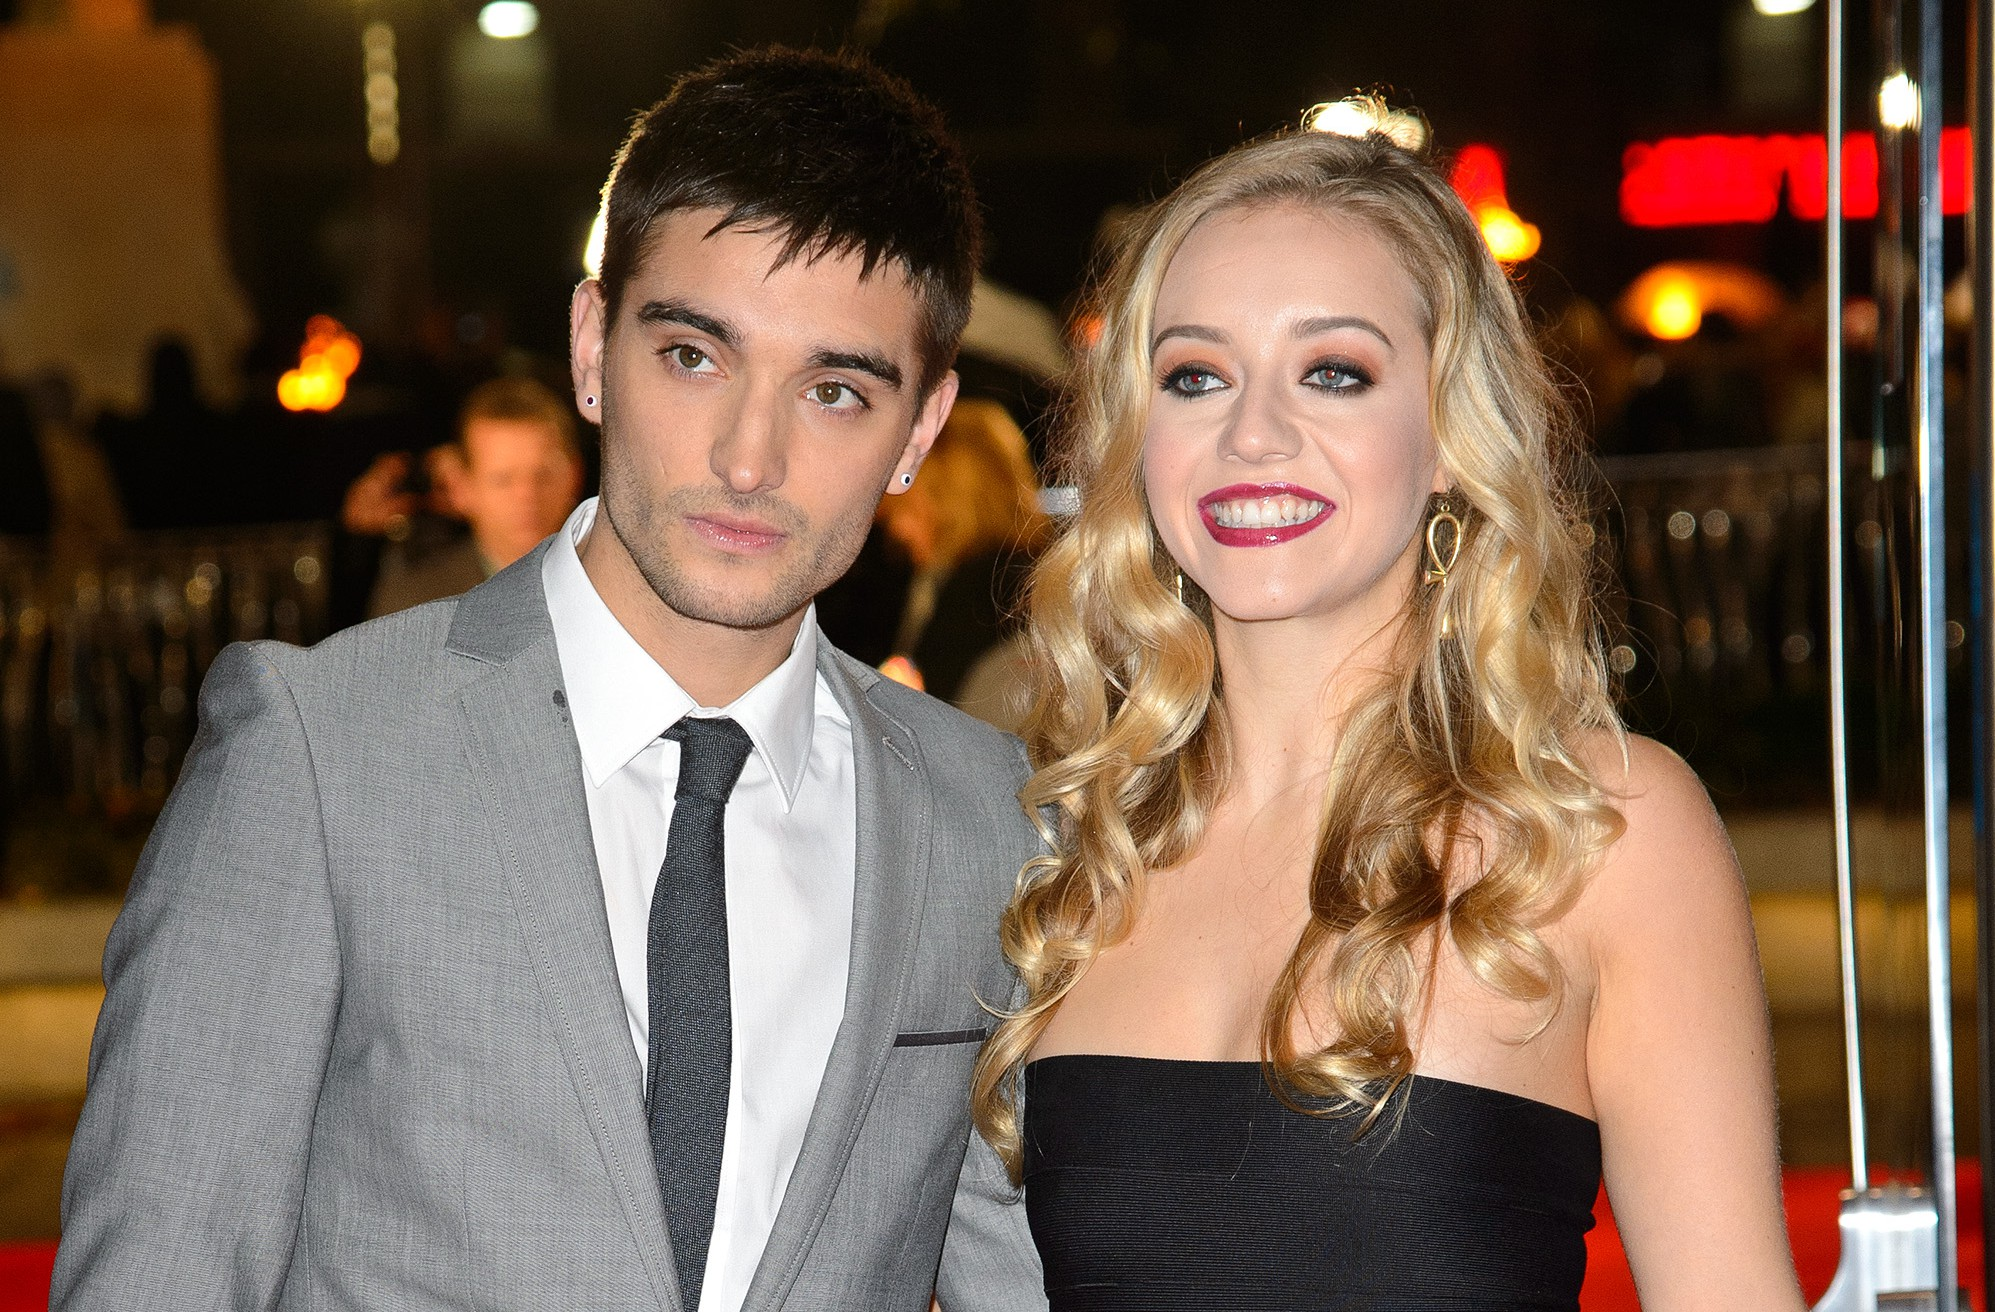 """LONDON, ENGLAND - NOVEMBER 11: (L-R) Tom Parker and Kelsey Hardwick attend the UK Premiere of """"The Hunger Games: Catching Fire"""" at Odeon Leicester Square on November 11, 2013 in London, England. (Photo by Dave J Hogan/Getty Images)"""